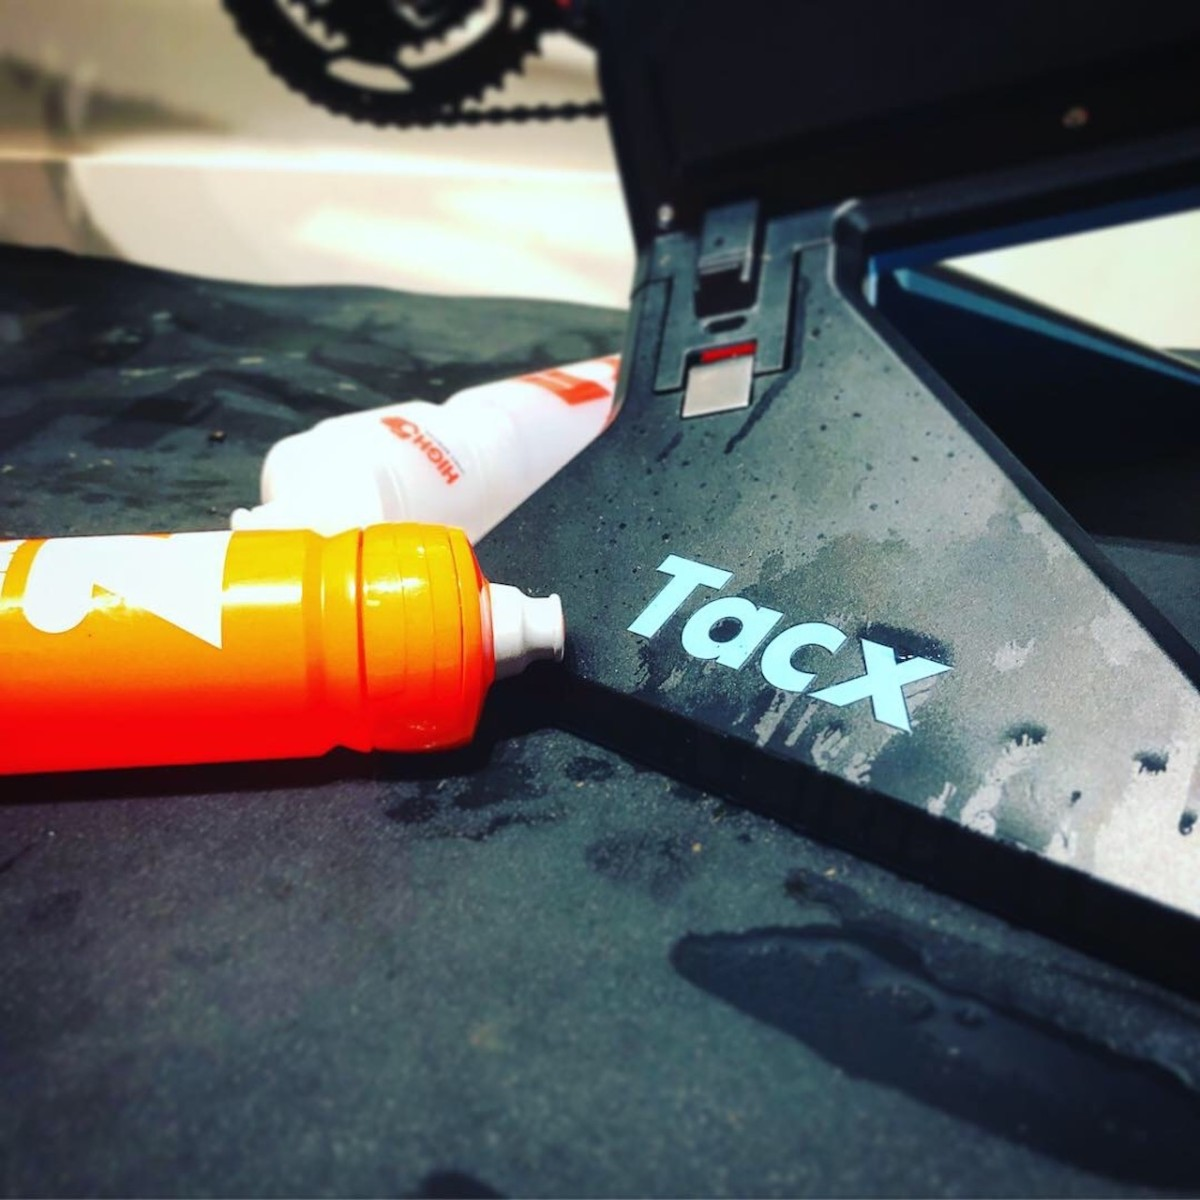 TitaniumGeek IMG 6019 Tacx NEO 2 Smart Trainer & Tacx NEO Smartbike   Preview Cycling Gear Reviews Smart Trainers Zwift  Zwift TacX Neo Tacx Smart trainer smart bike cycling   Image of IMG 6019